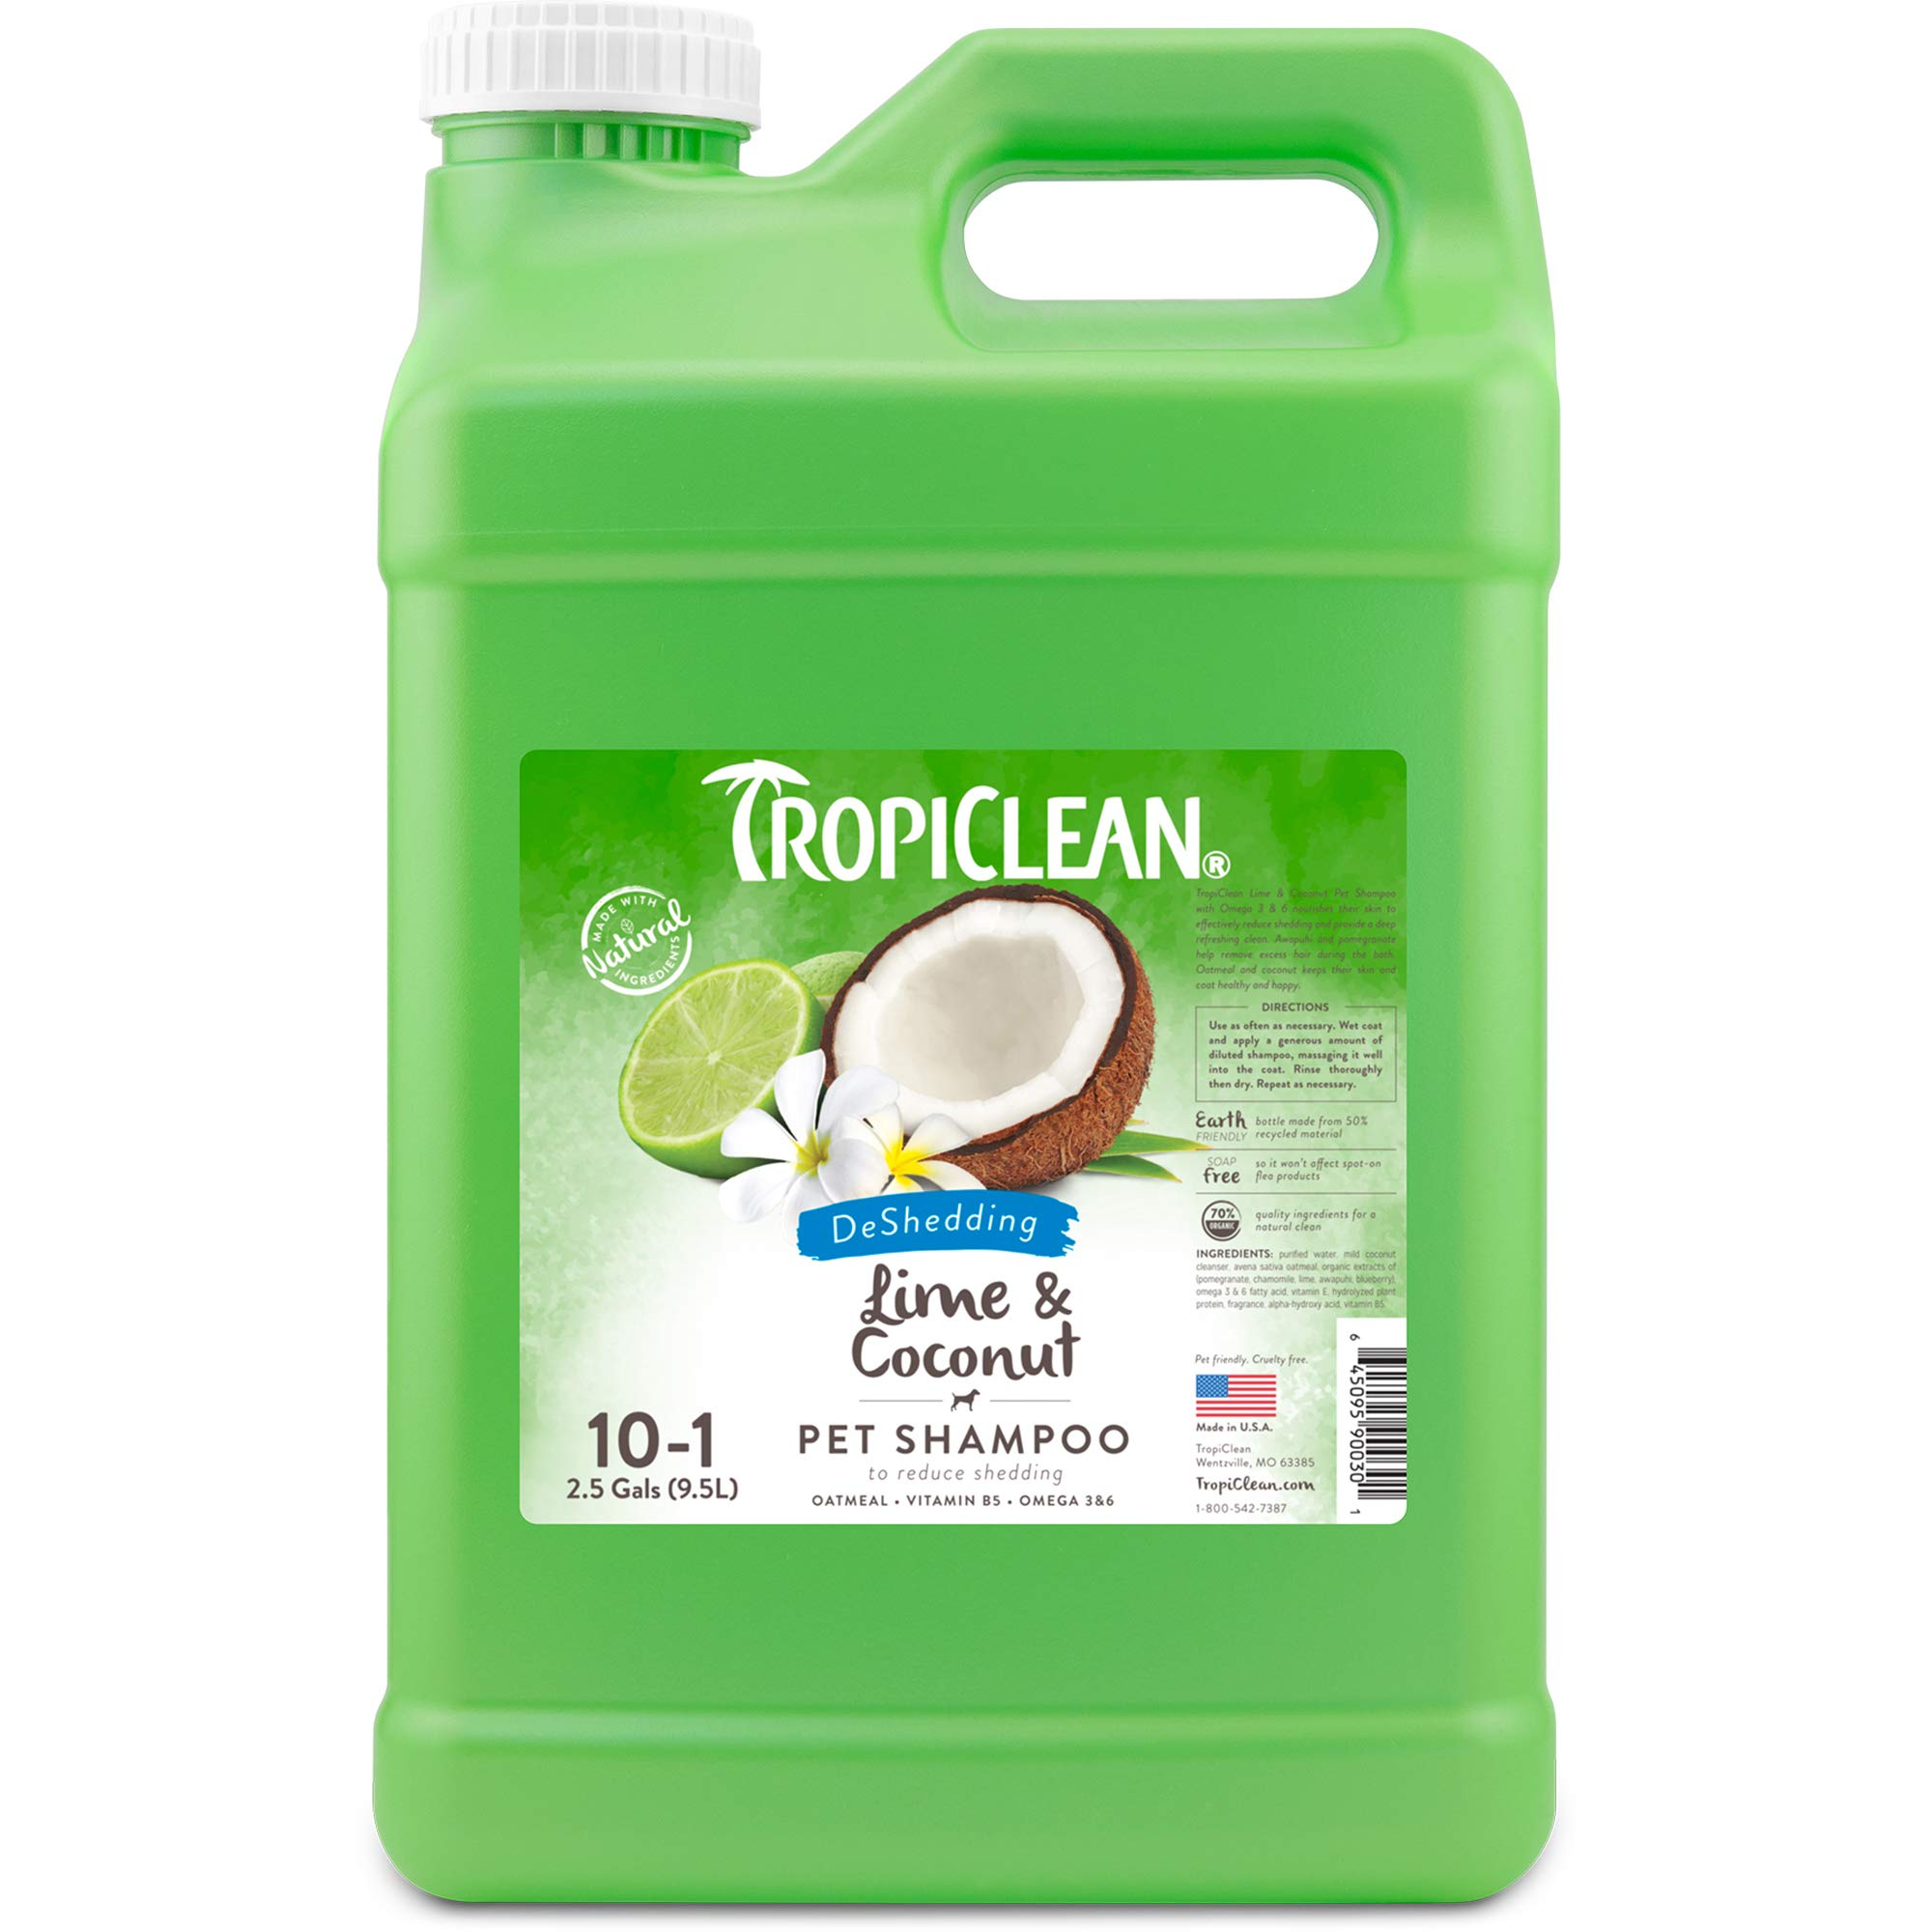 TropiClean Lime and Coconut Shed Control Shampoo for Pets, 2.5 gal, Made in USA